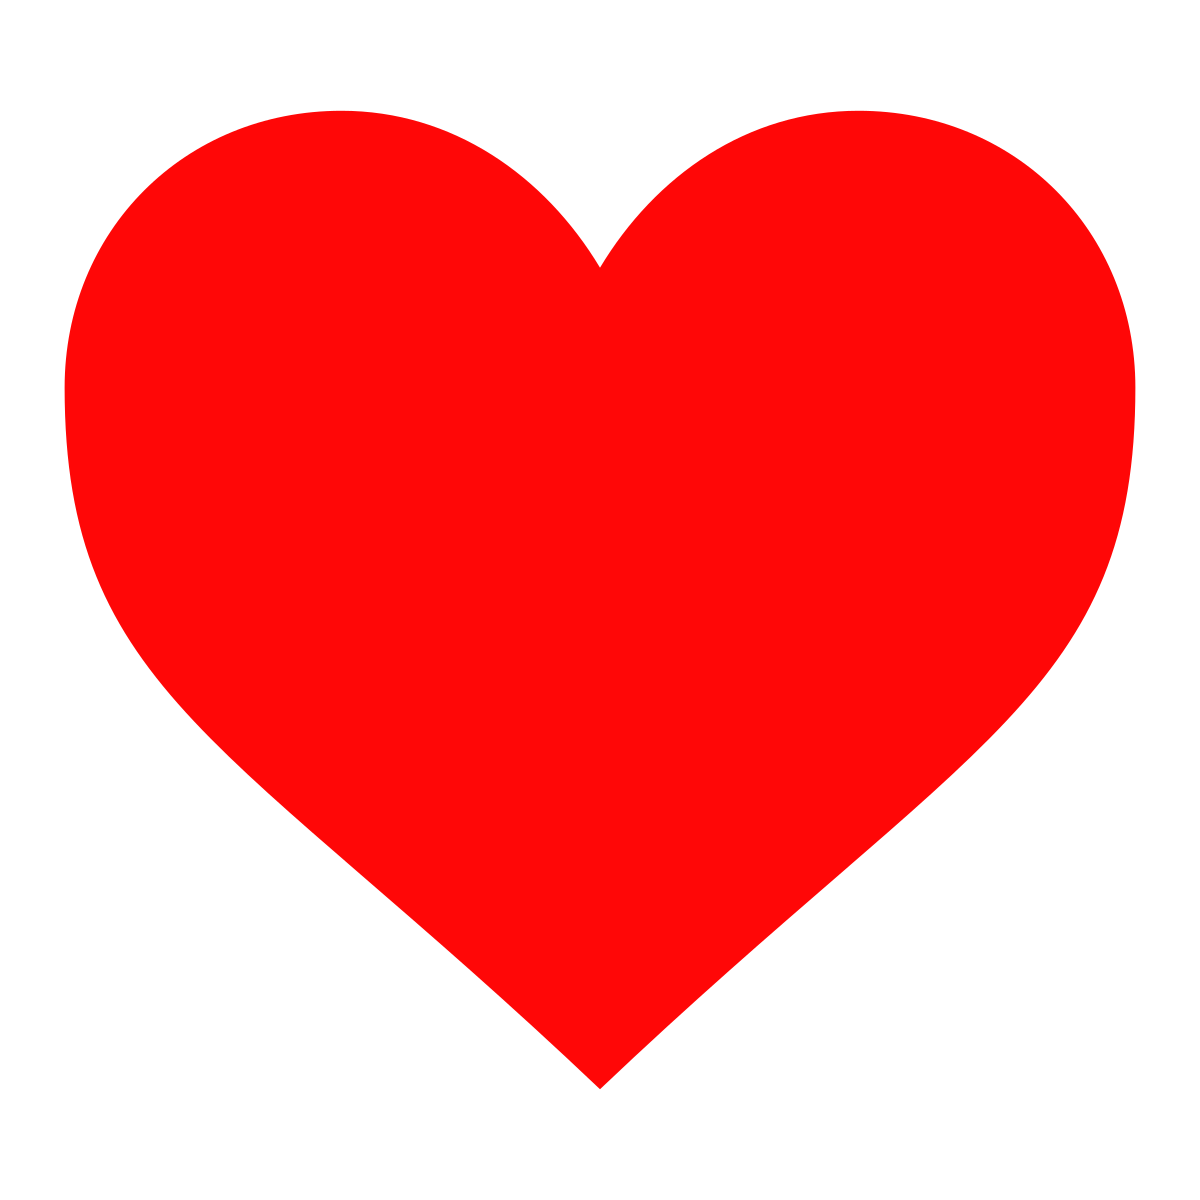 love png heart symbol wikipedia #10005